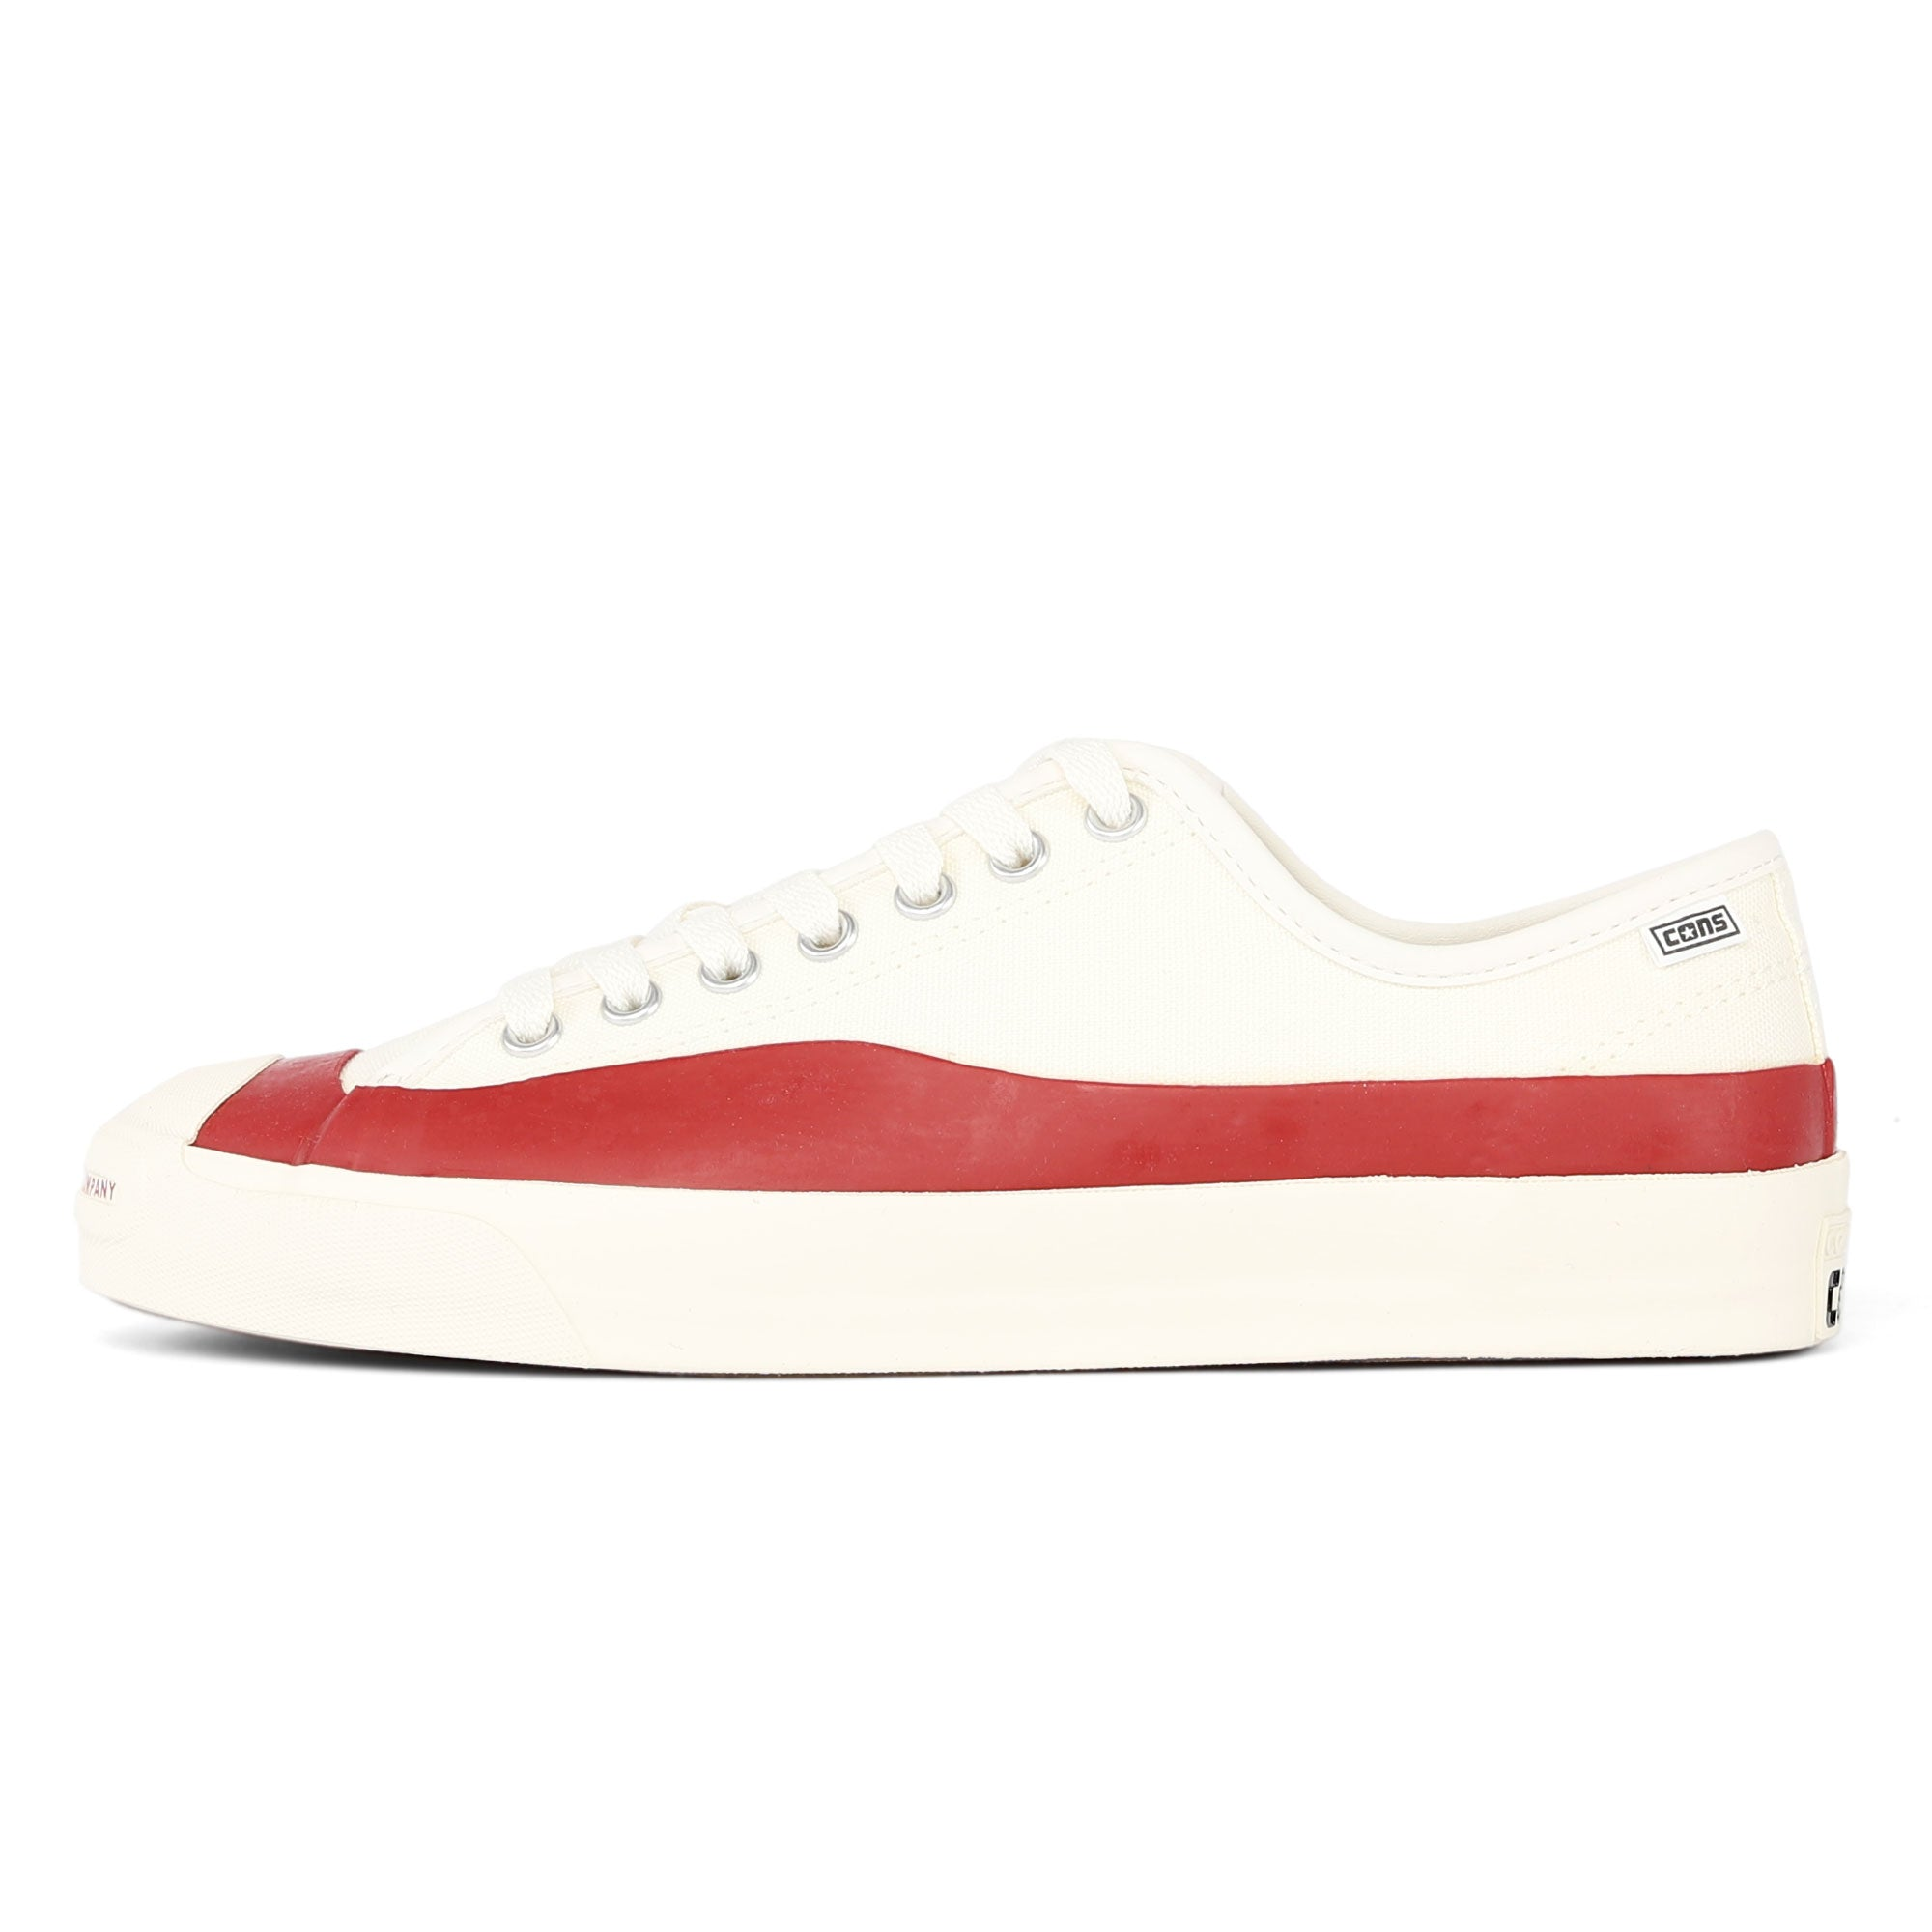 Converse Jack Purcell Pro PTC Product Photo #1